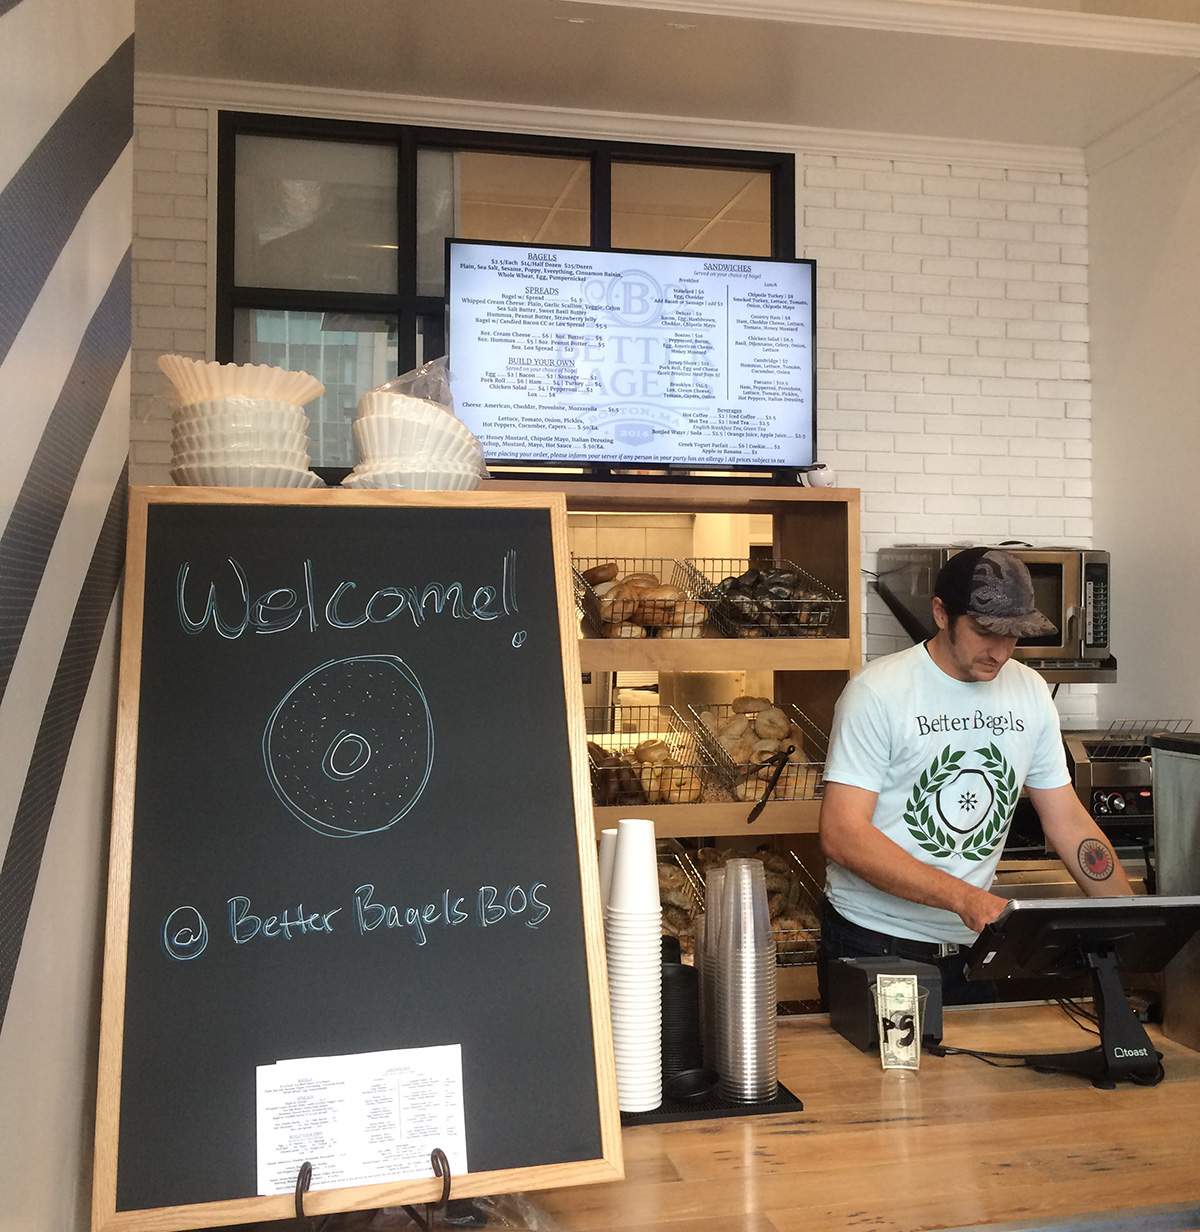 Better Bagels in the Boston Seaport